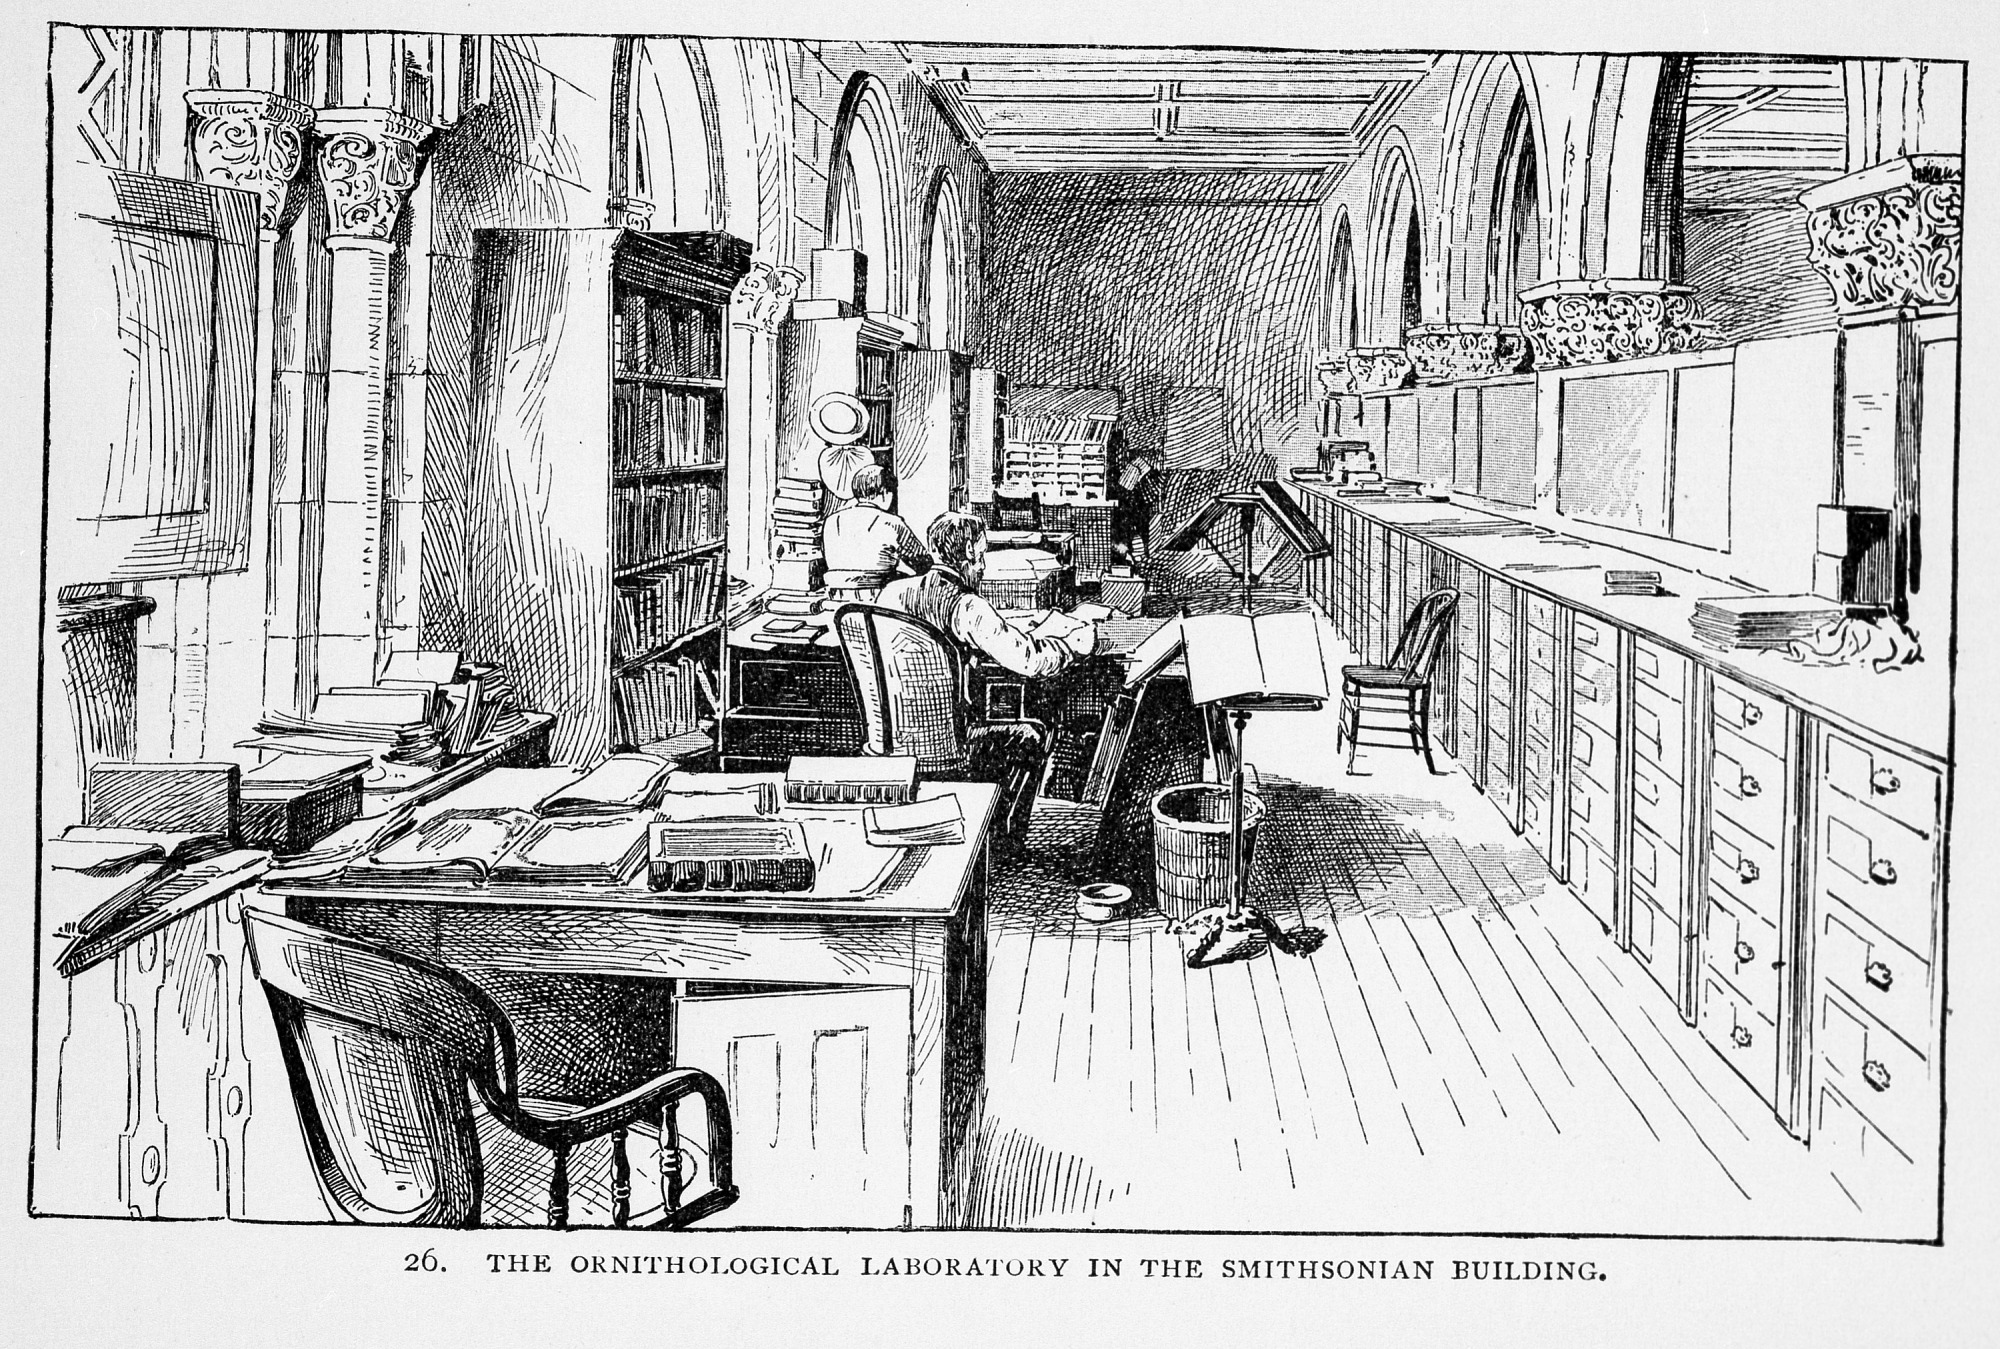 Ornithological Lab, SI Building, by Unknown, 1886, Smithsonian Archives - History Div, 95-20349.